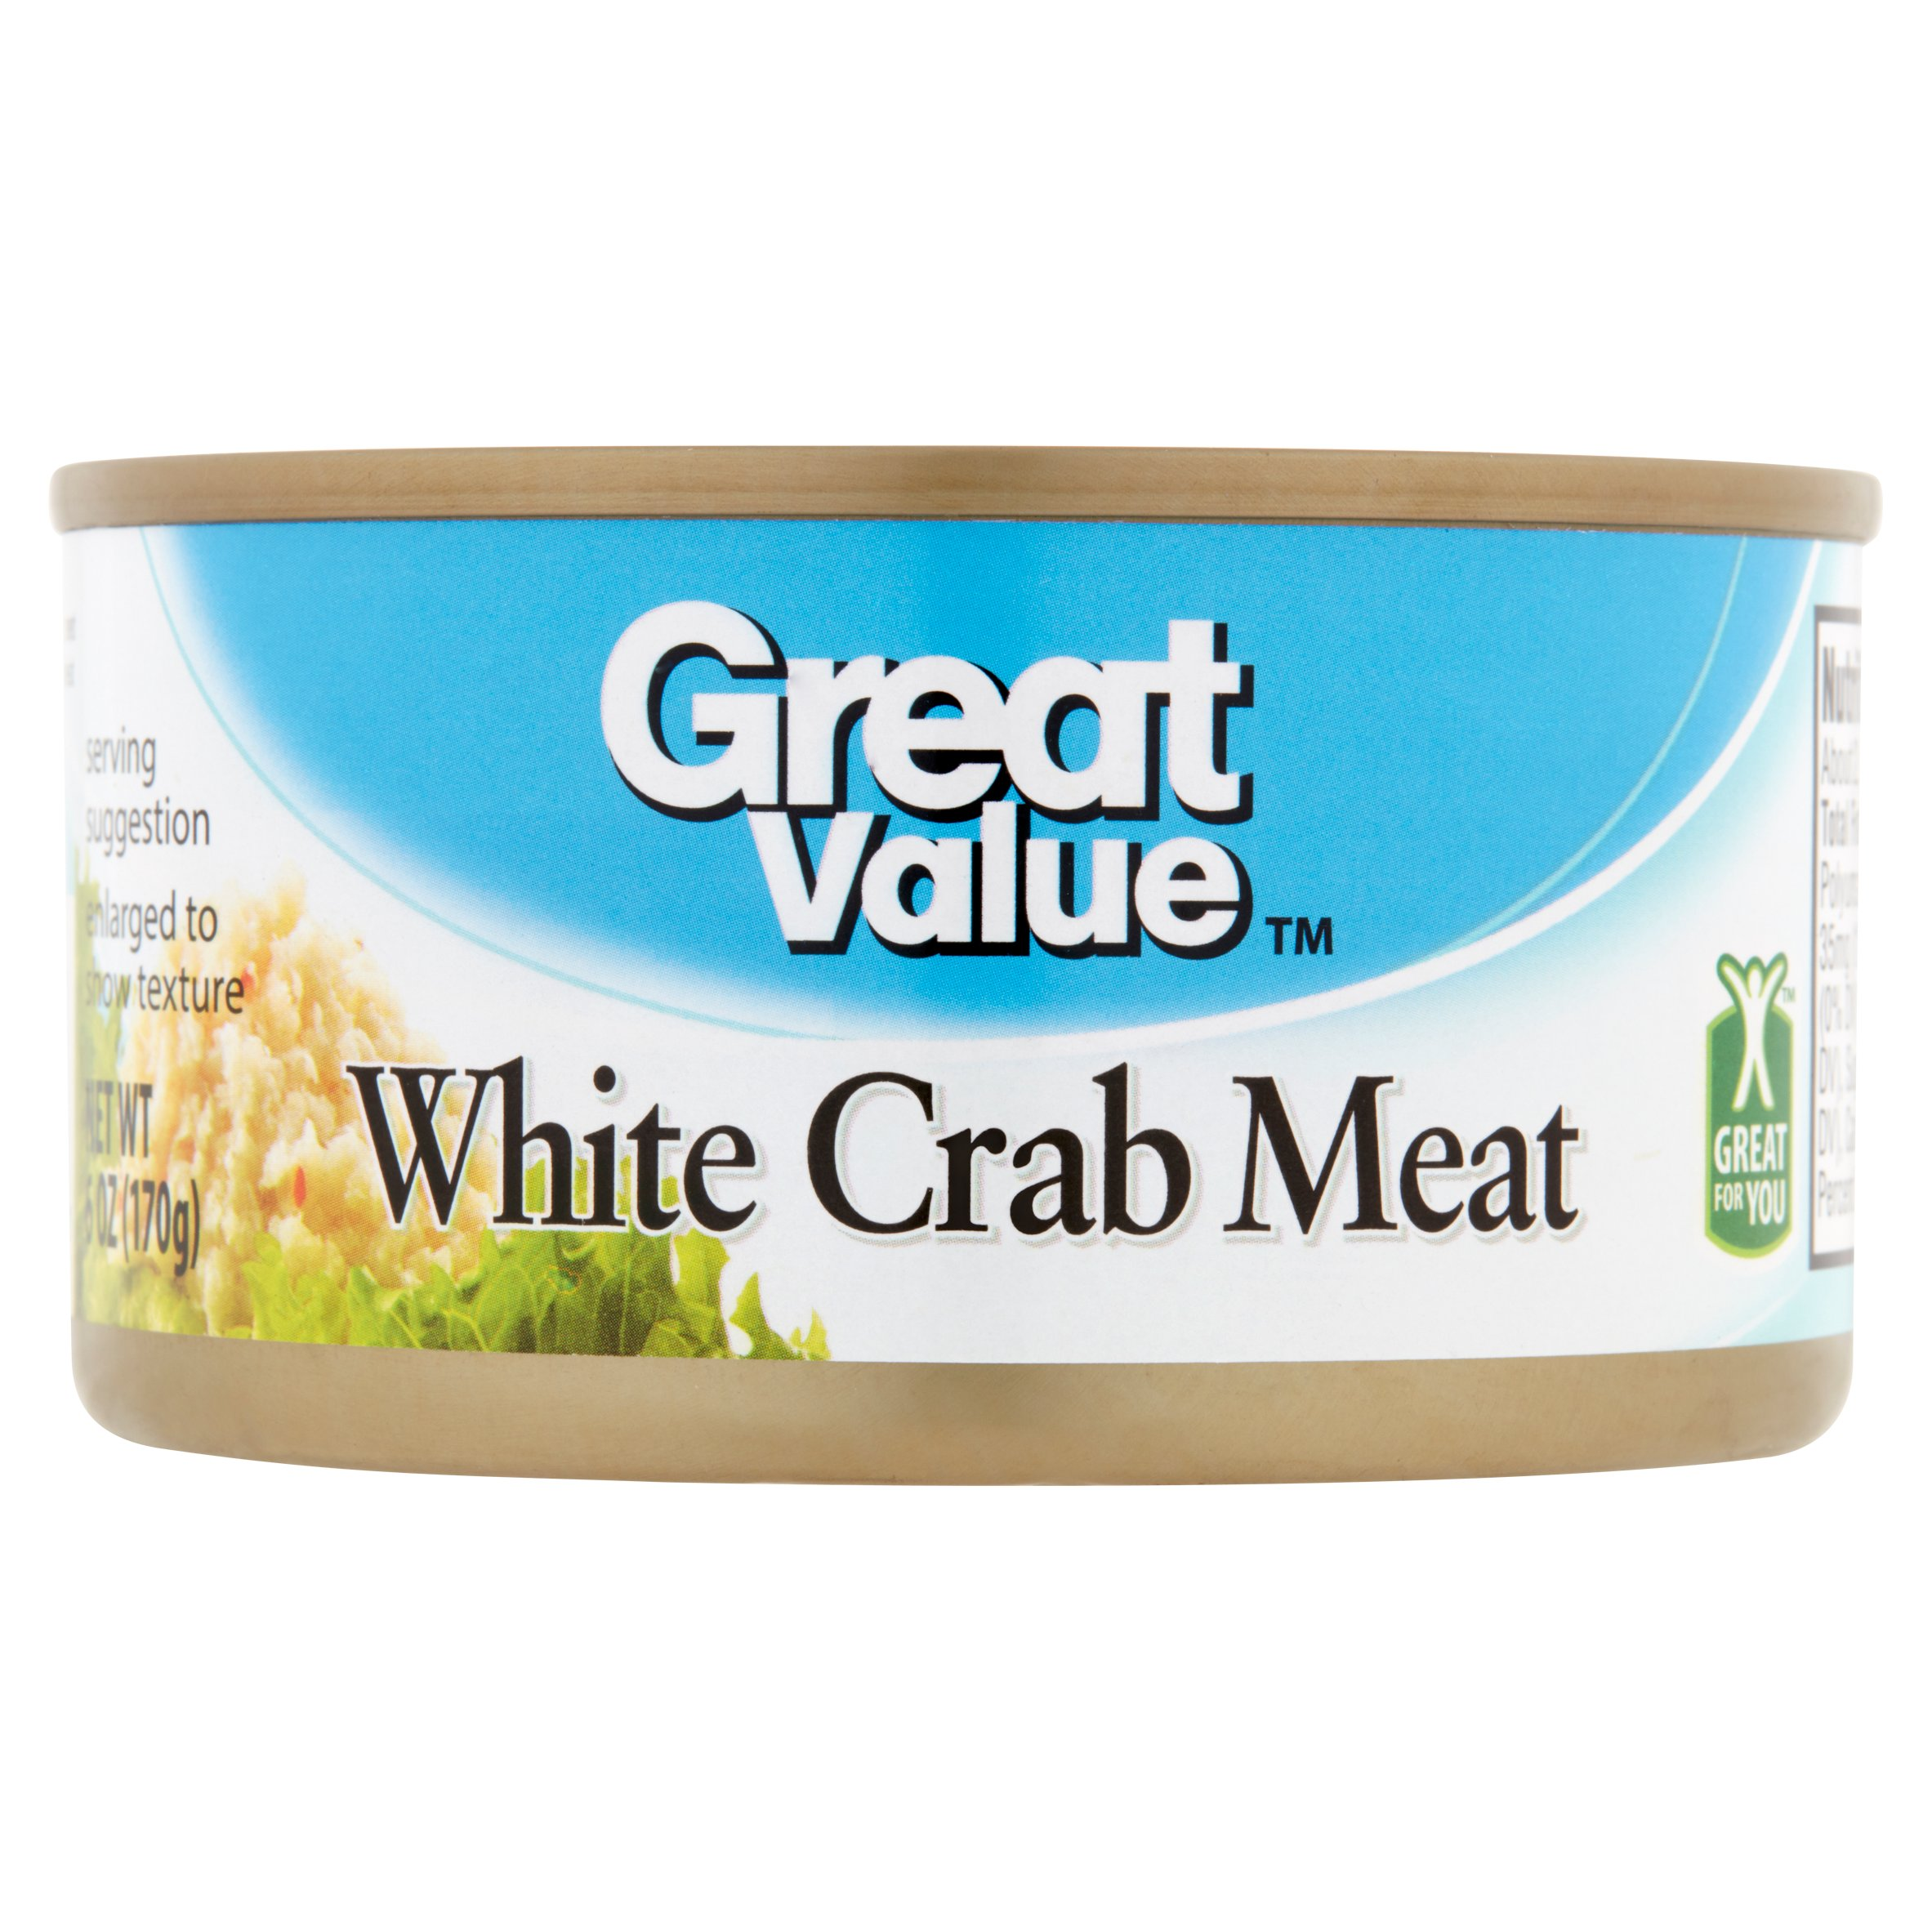 Great Value White Crab Meat 6 oz by Wal-Mart Stores, Inc.